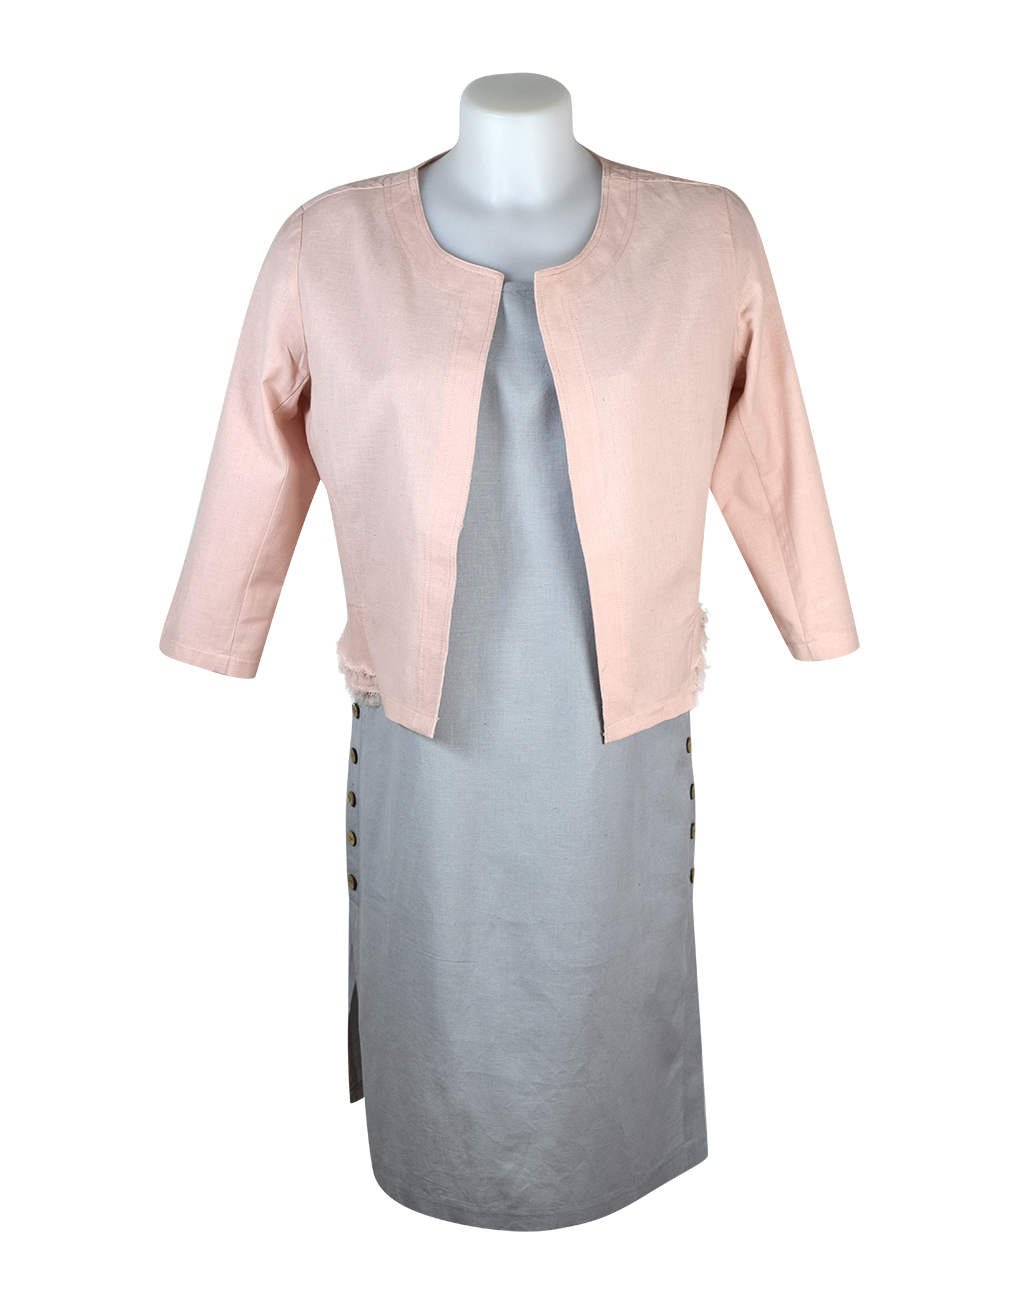 Alice Collins Kylie Dress Cool Steel Front 024S070 & Grace Jacket Dark Pink 024S076